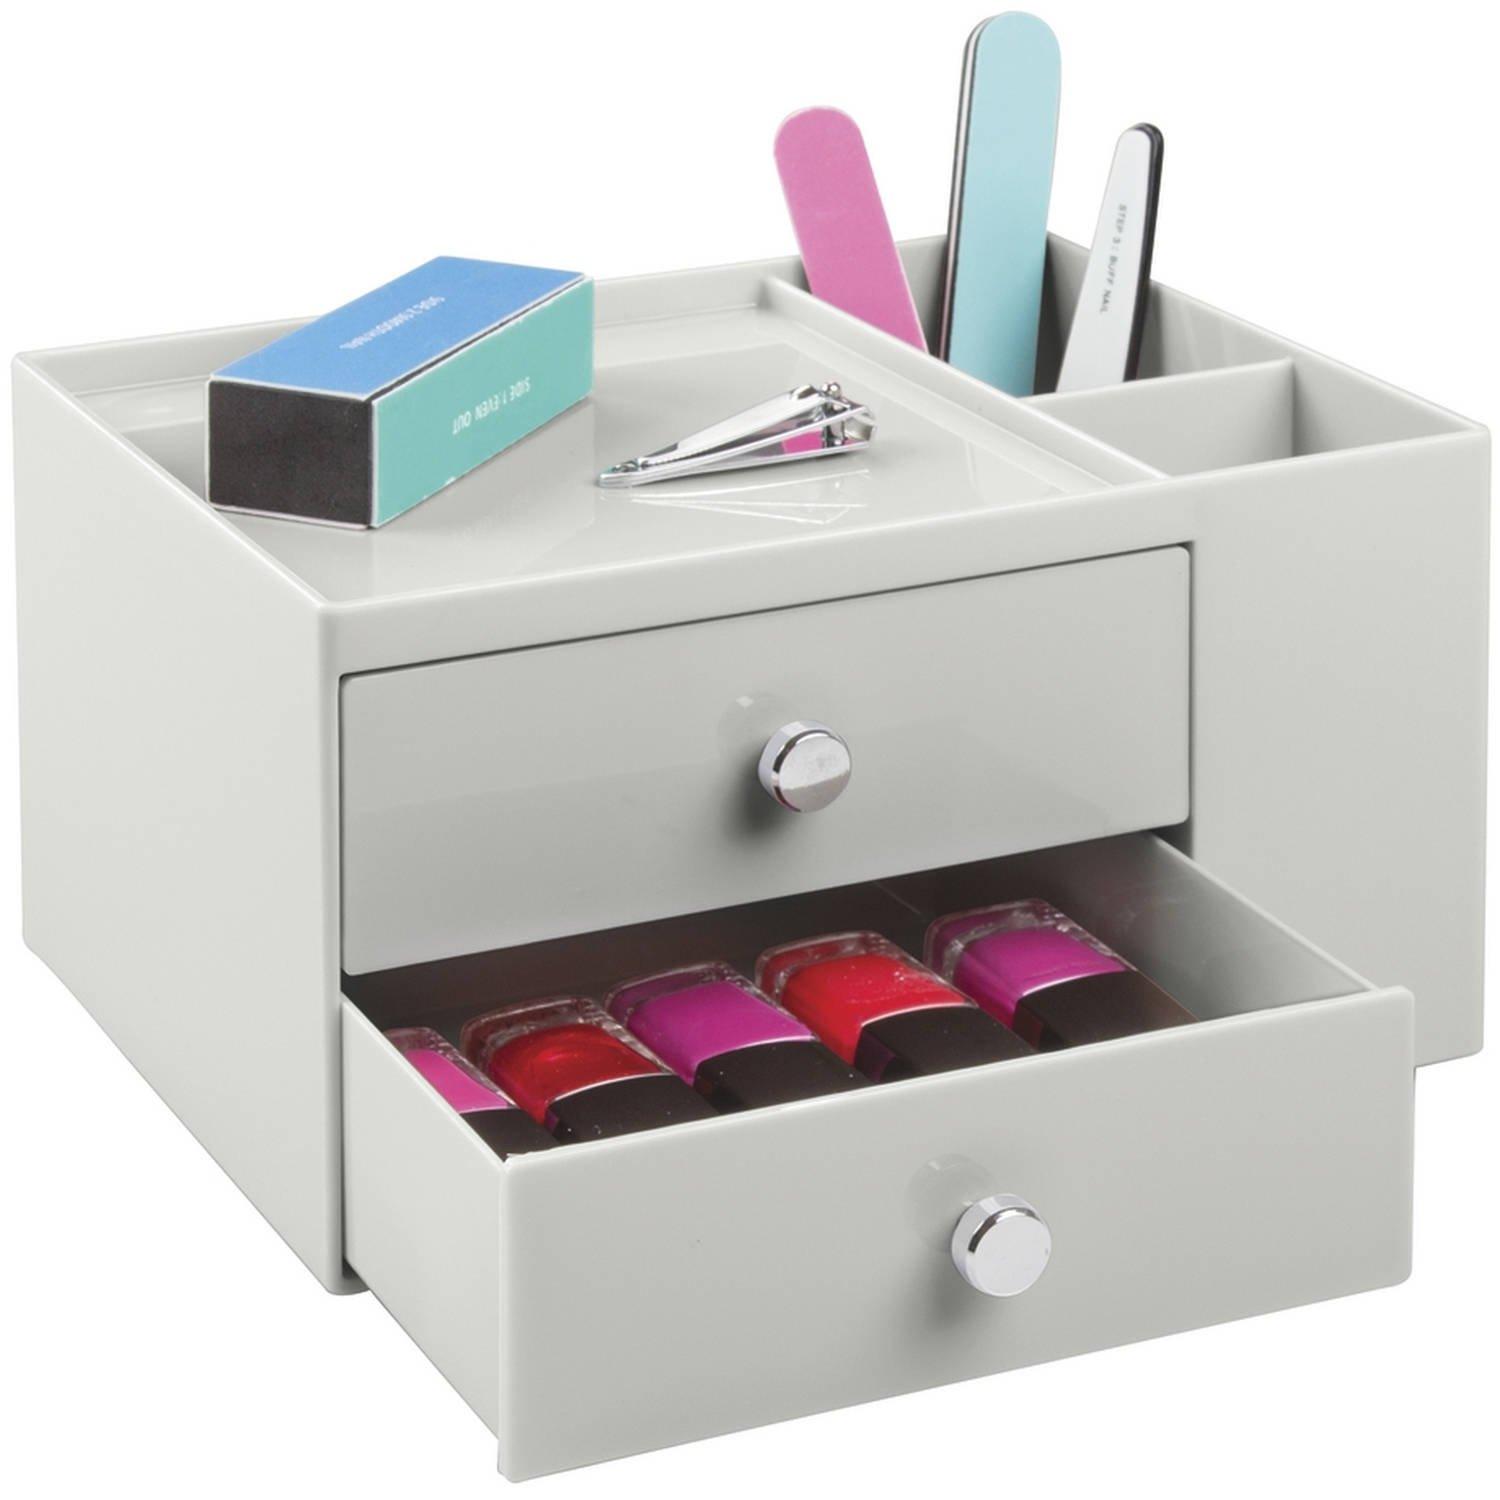 Interdesign 2 Drawer Cosmetic Organizer For Makeup And Beauty Products, Light